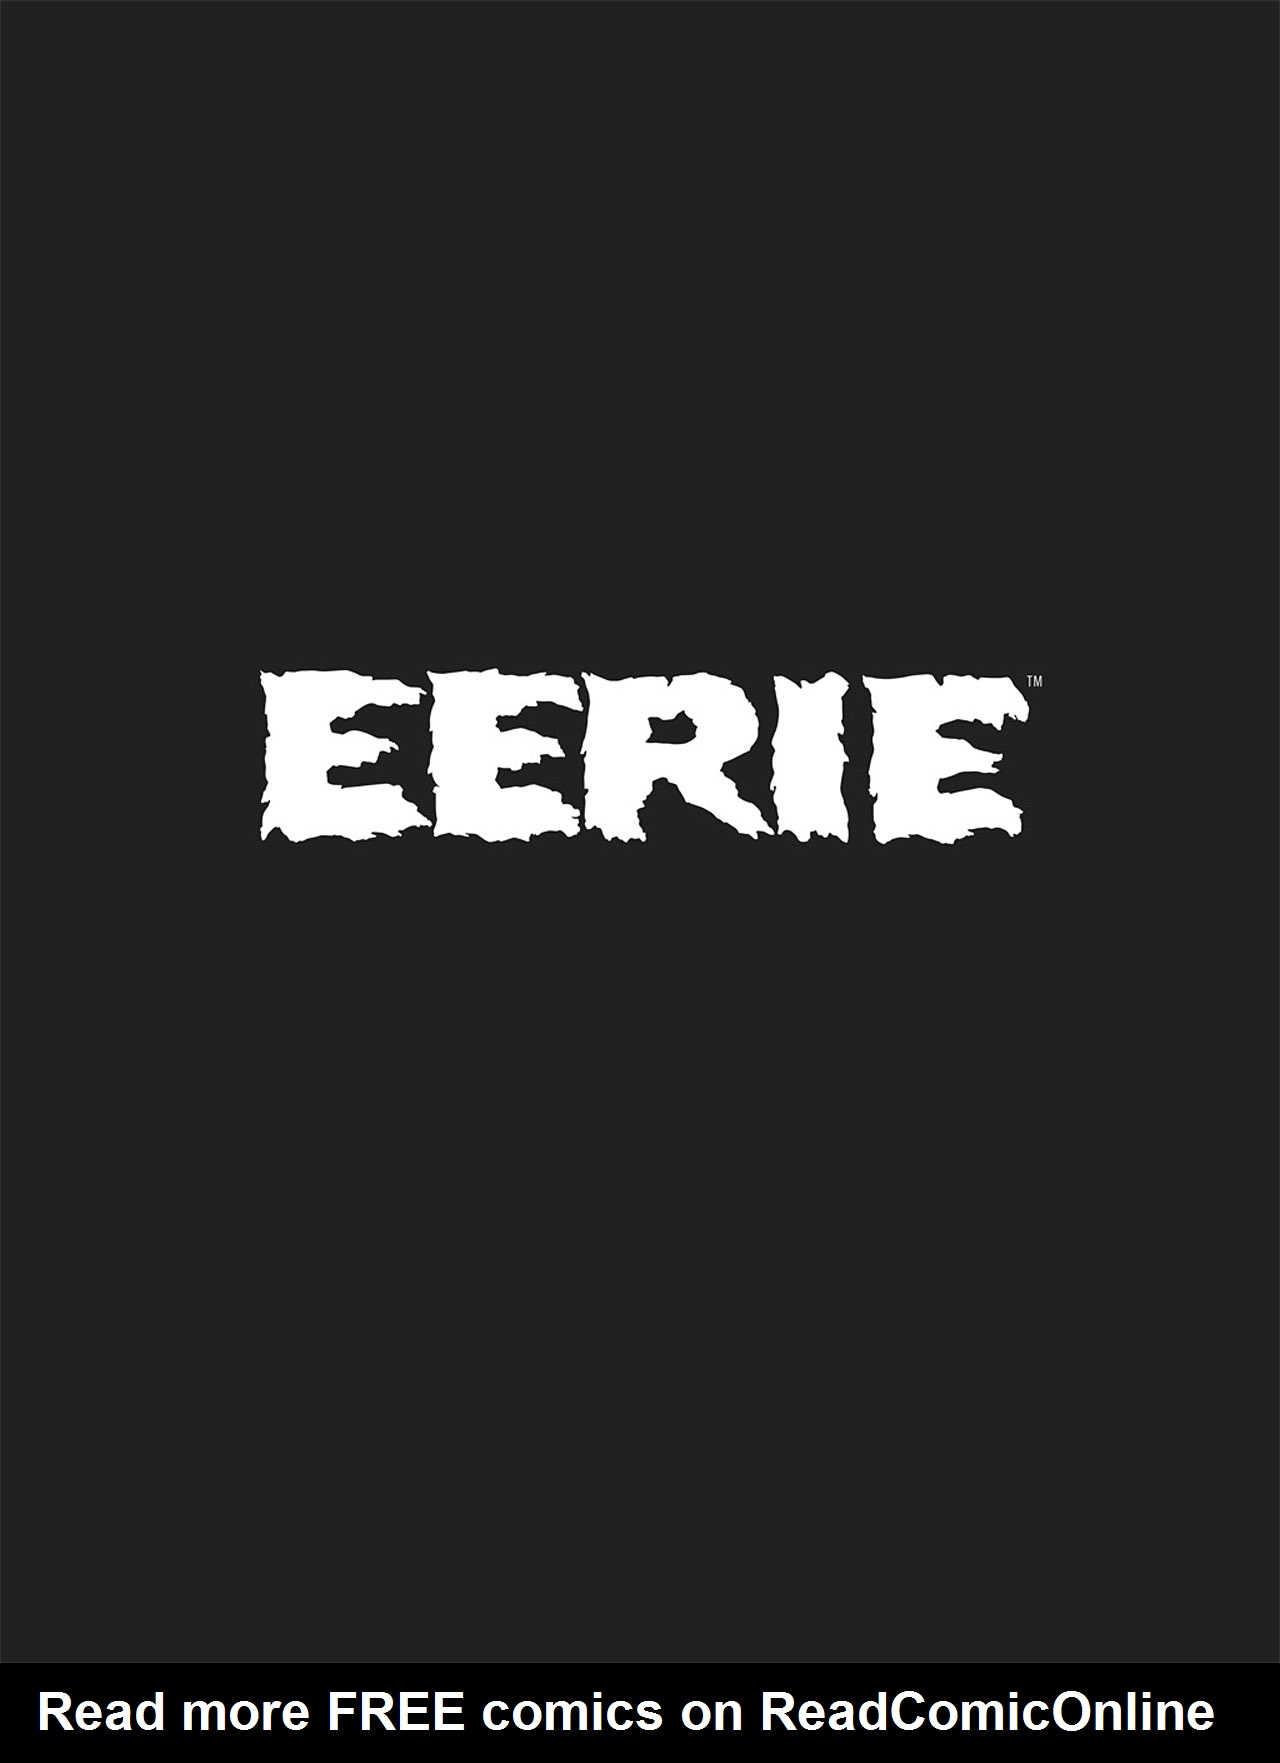 Read online Eerie Archives comic -  Issue # TPB 1 - 2